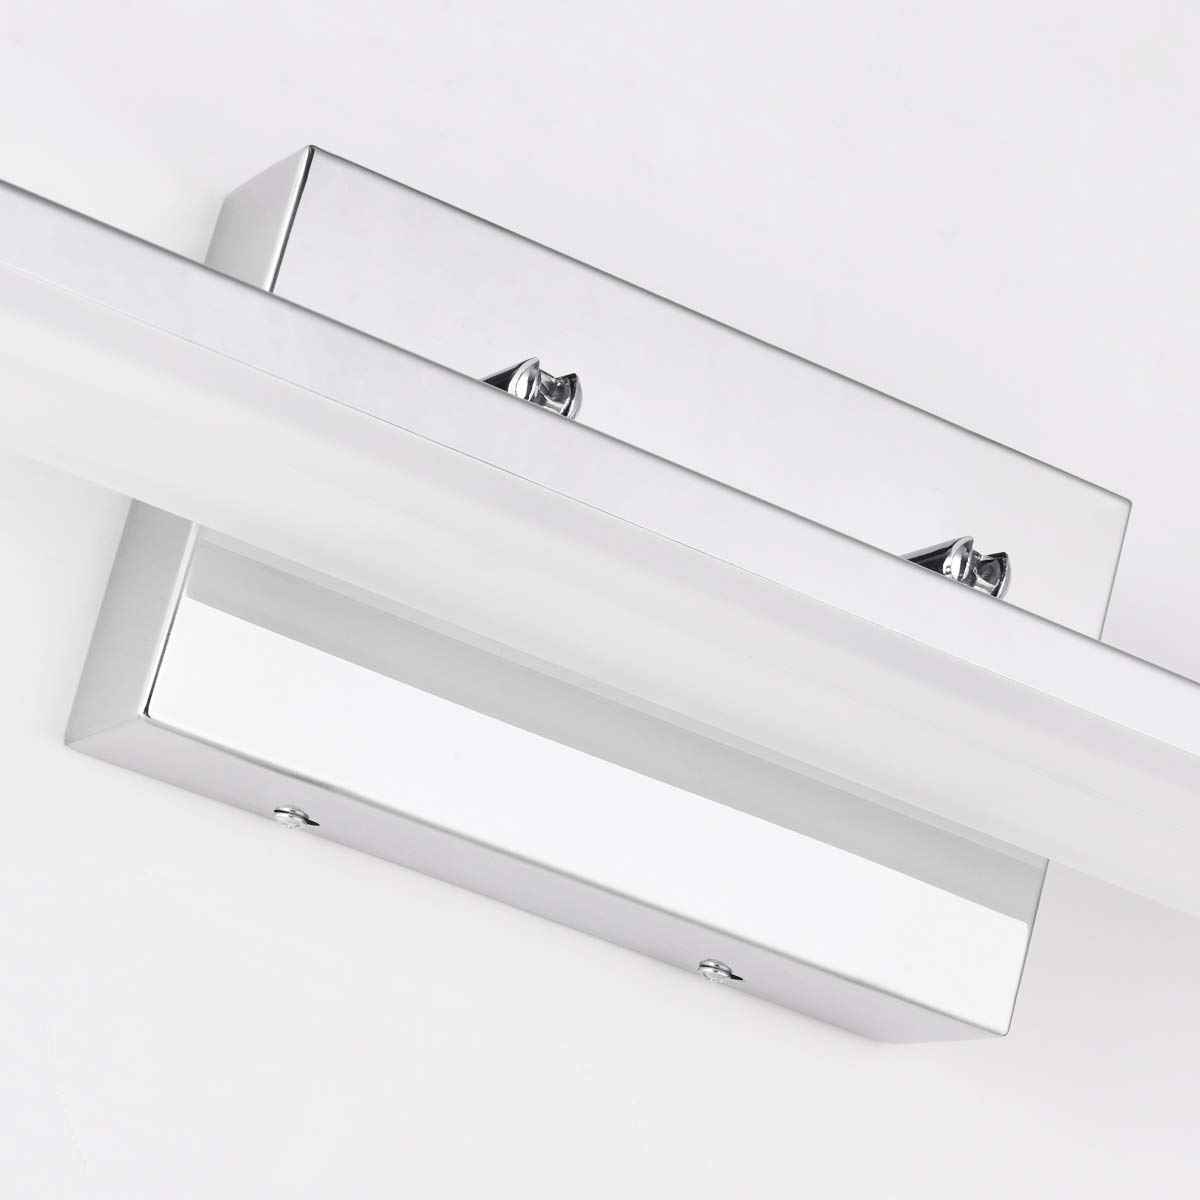 mirrea 36in Modern LED Vanity Light for Bathroom Lighting Dimmable 36w Cold White 5000K by mirrea (Image #5)